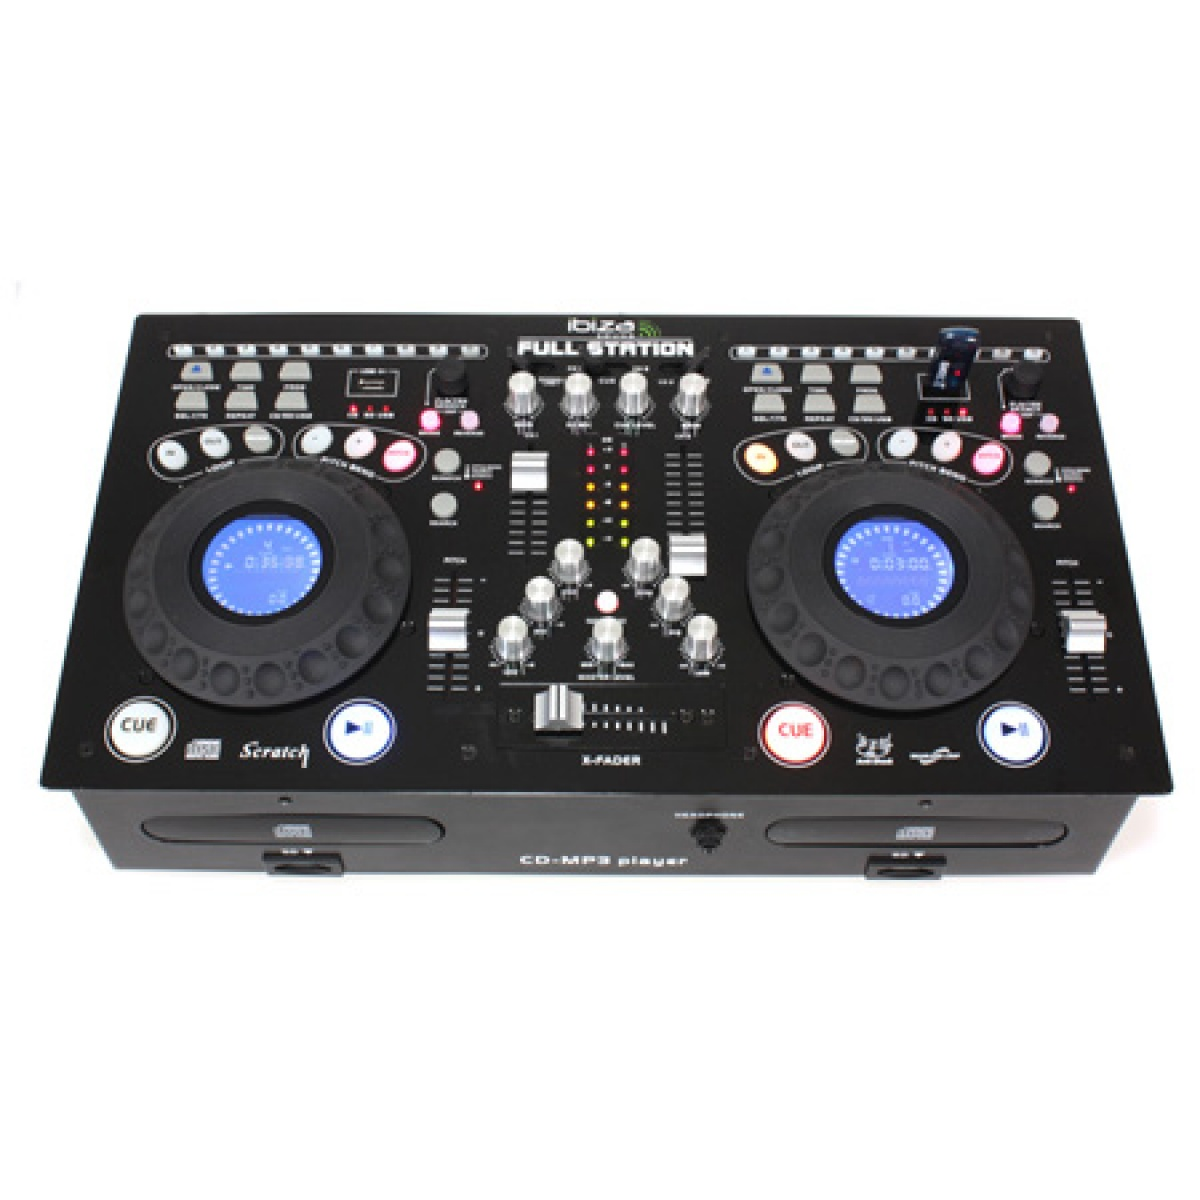 Consola DJ CONSOLA PROFESIONALA CU CD/USB/SD PLAYER DUAL